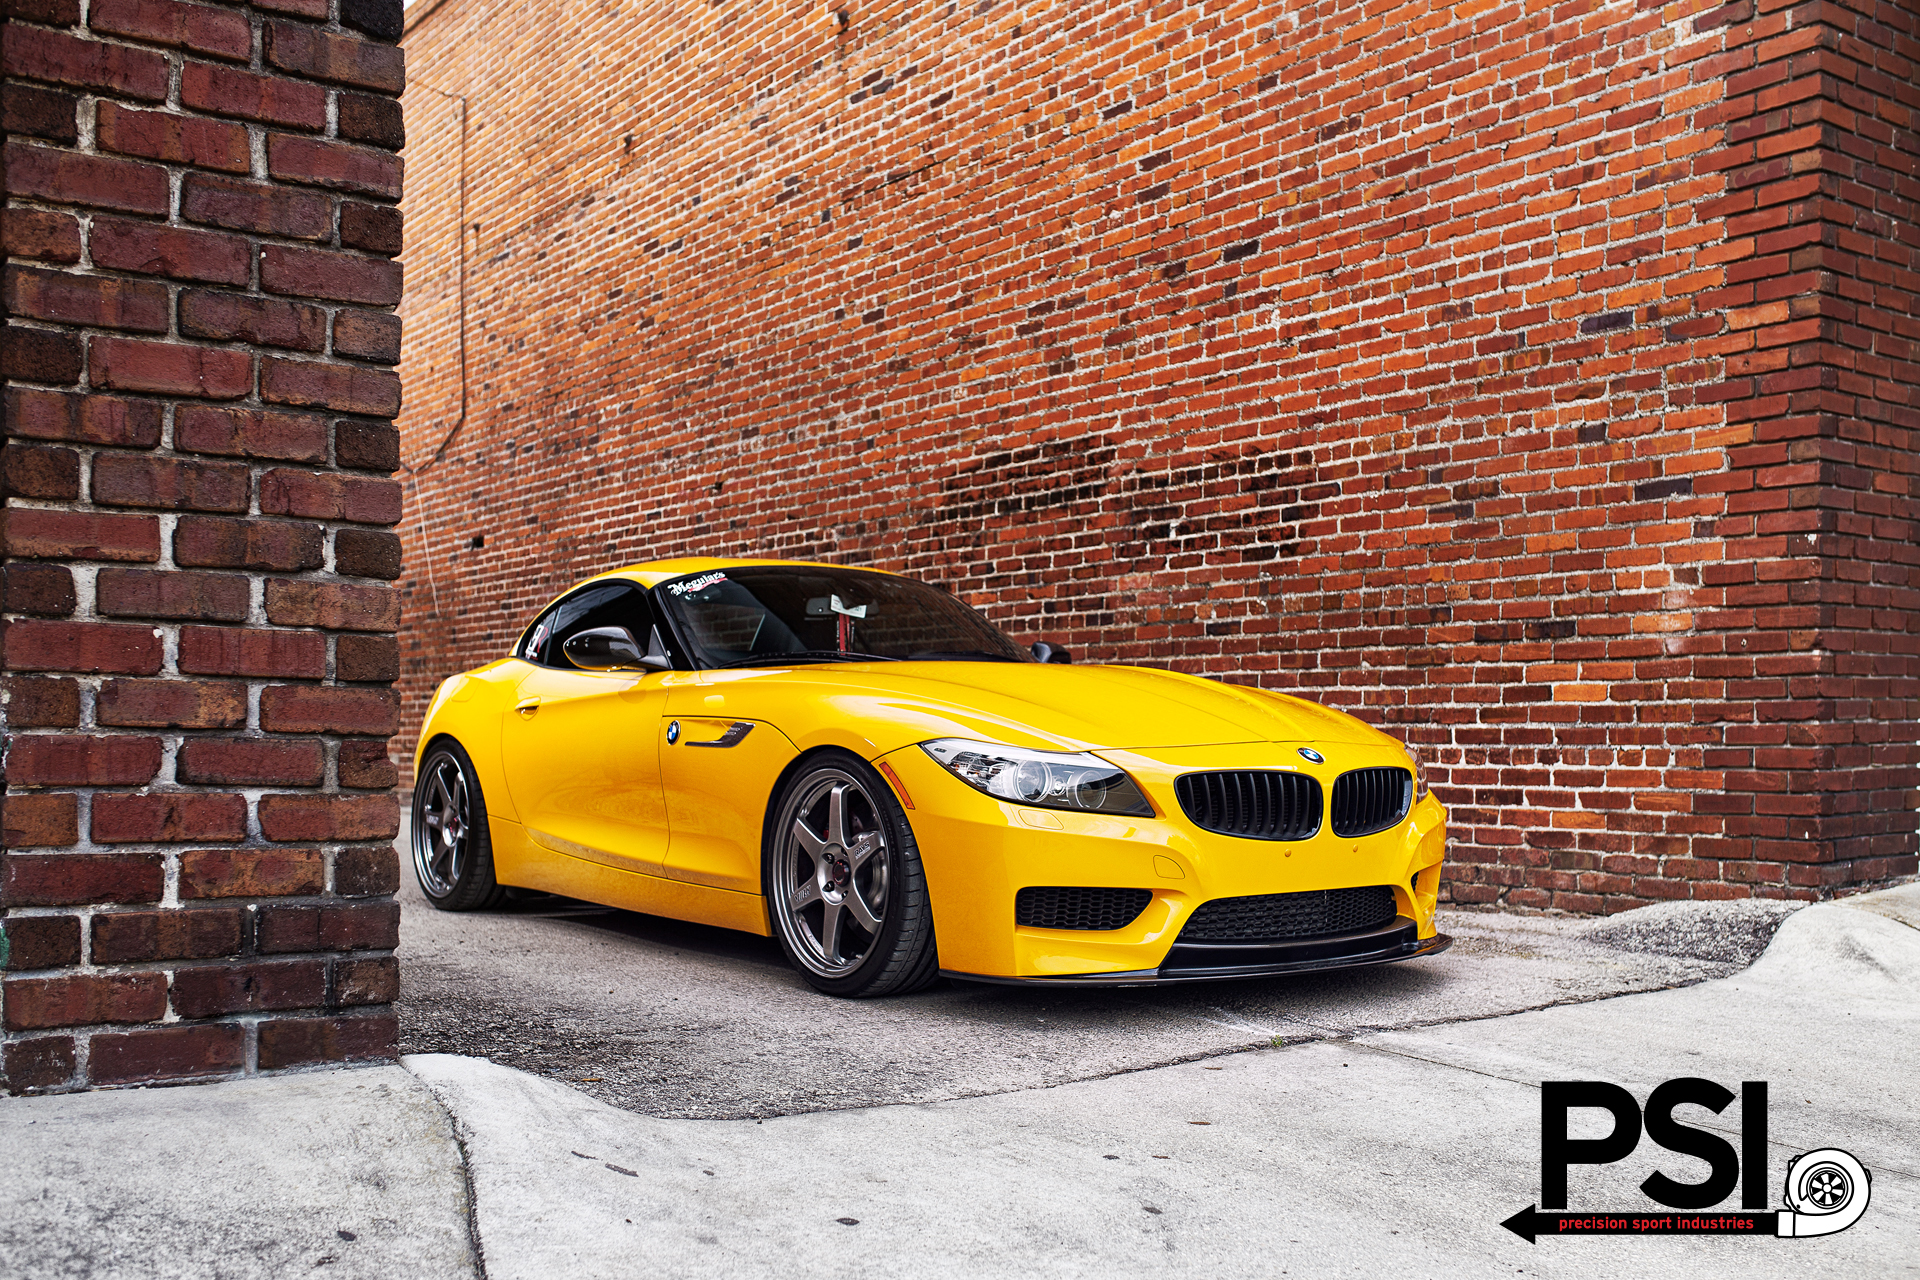 Atacama Yellow Bmw E89 Z4 By Psi Autoevolution